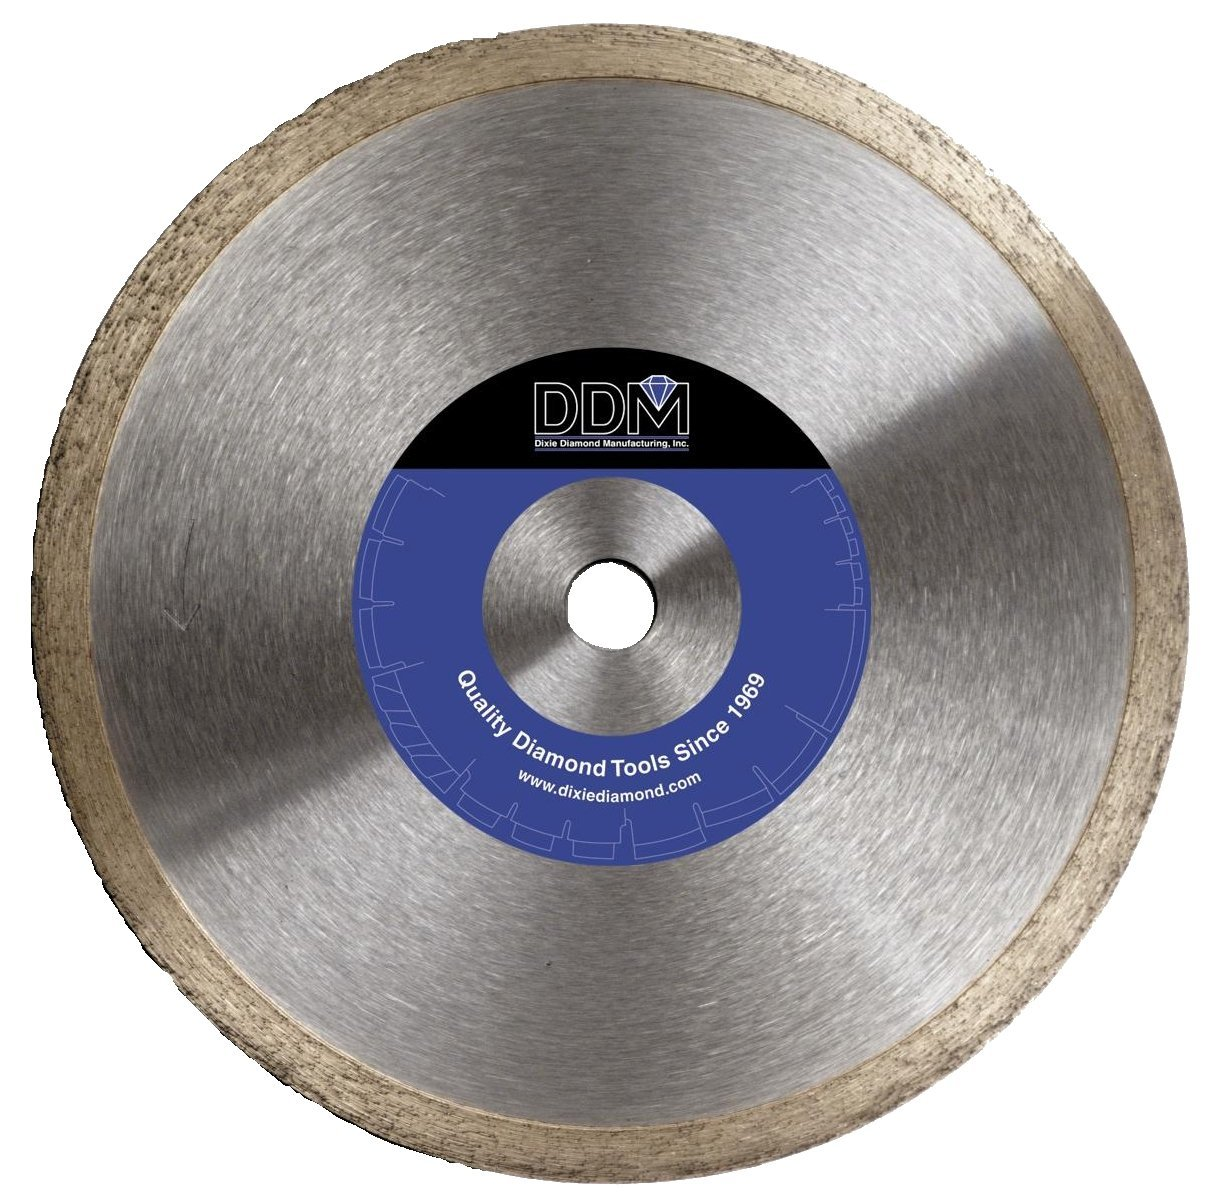 Dixie Diamond Manufacturing T204.5 Tile Blade Premium Grade for Wet Cutting, 4.5-Inch X 0.060-Inch X 7/8-Inch with 5/8-Inch Bushing